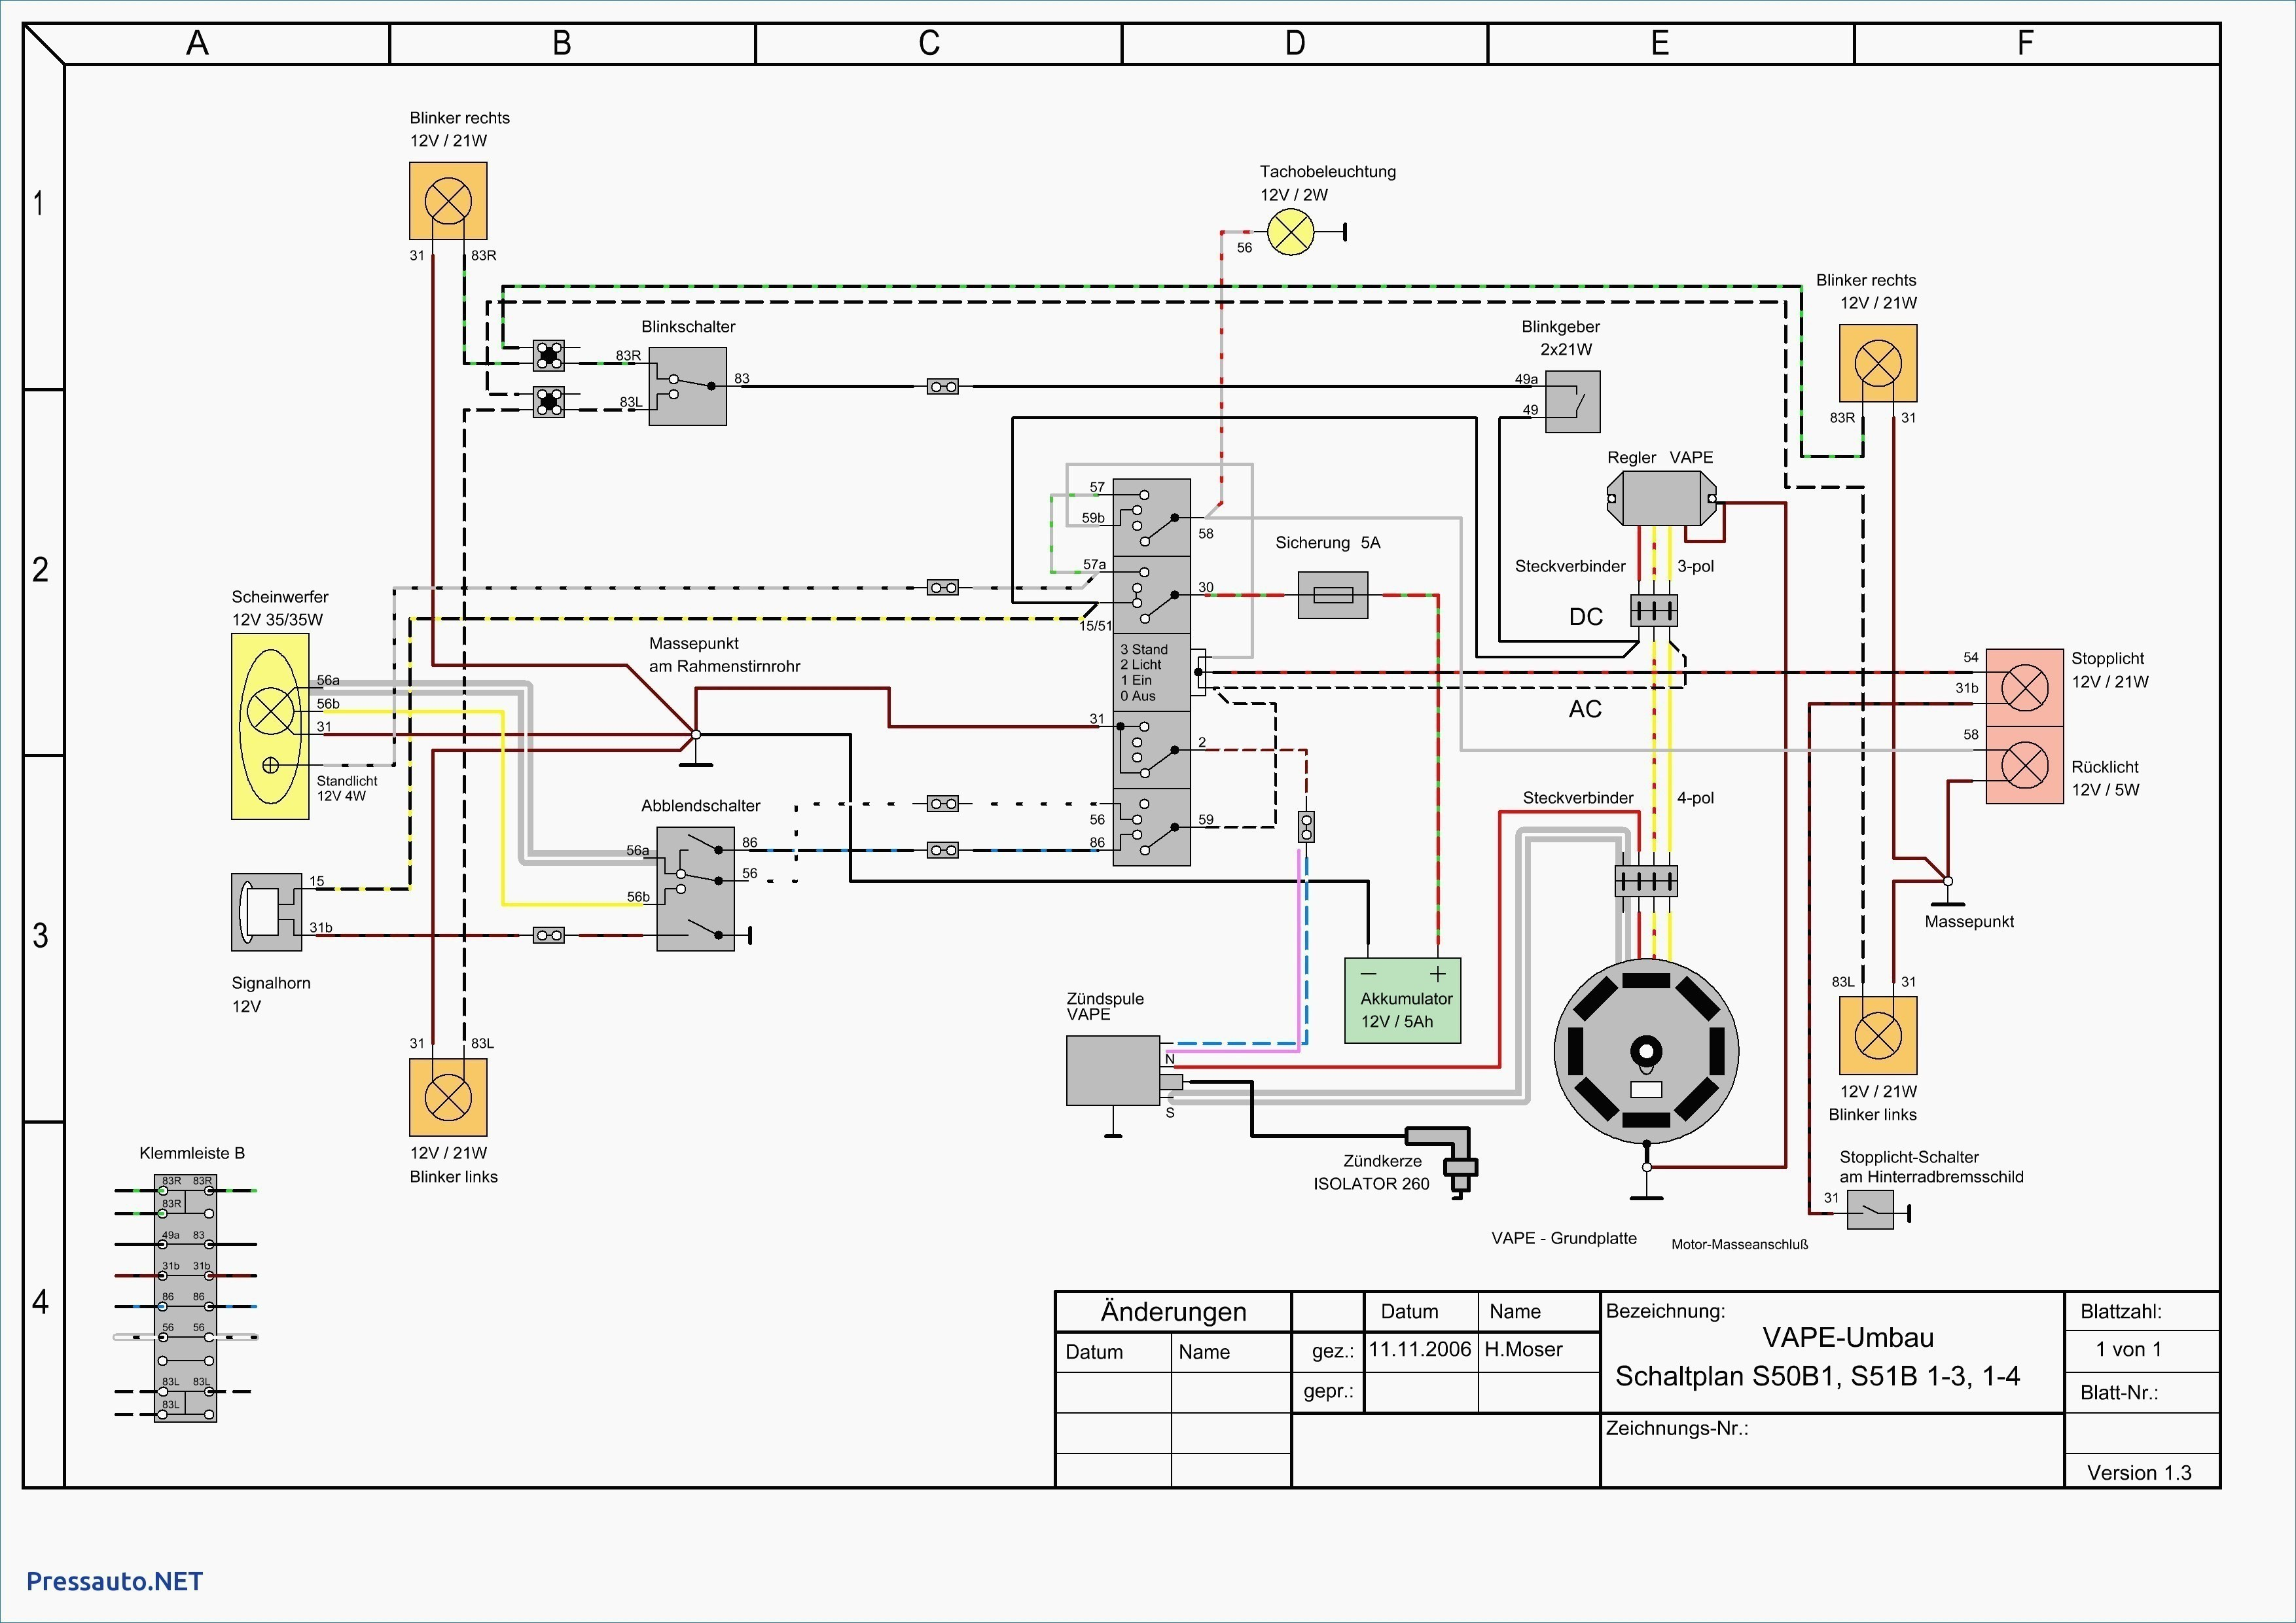 Chinese atv Wiring Schematic Bearcat 110cc atv Wiring Diagram Wiring Diagrams Schematics Of Chinese atv Wiring Schematic